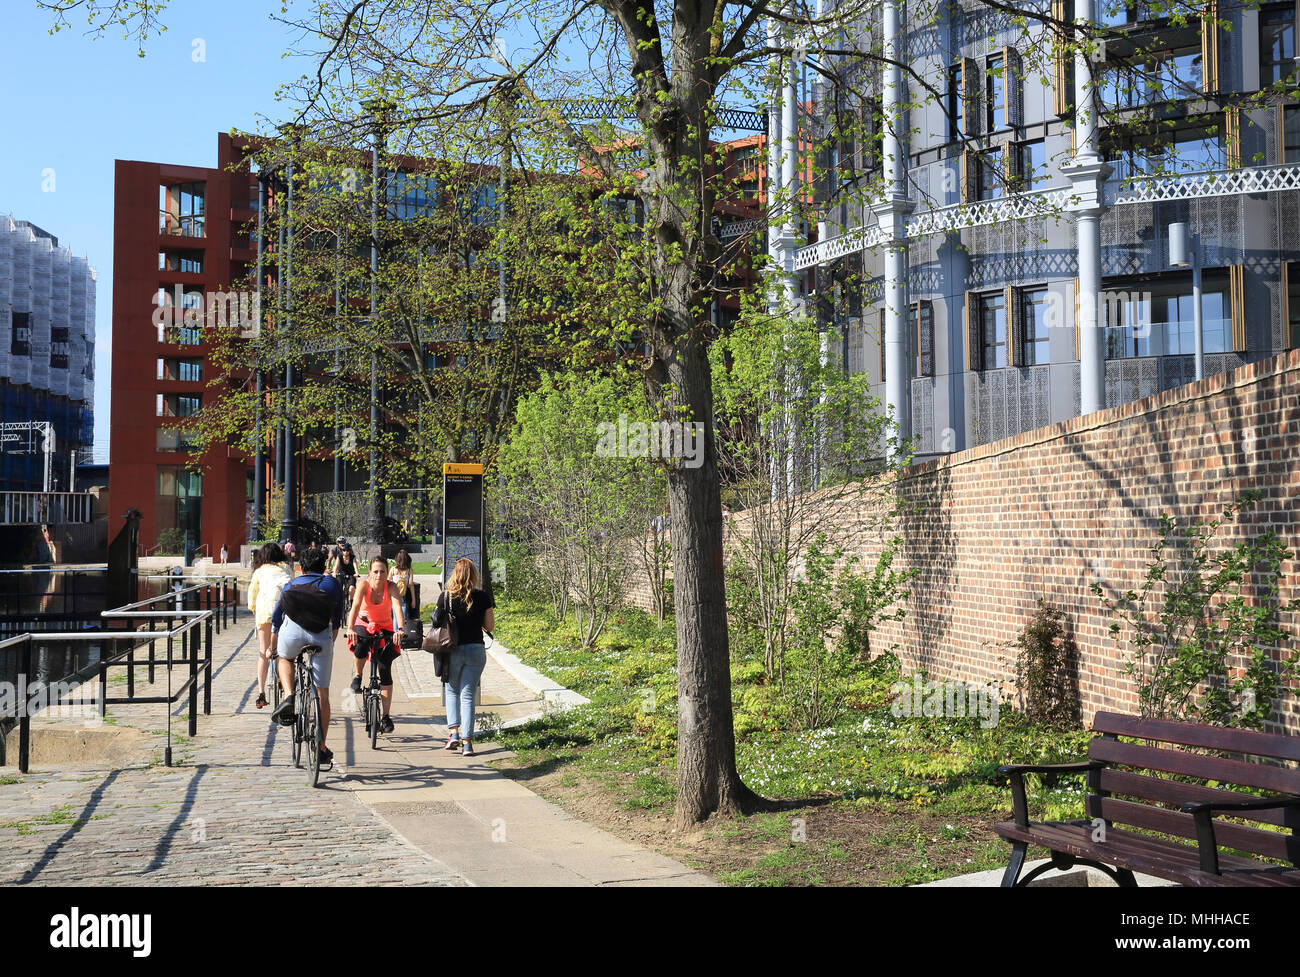 Cycling along the towpath past Gasholder Park, on Regents Canal at Kings Cross, London, UK - Stock Image